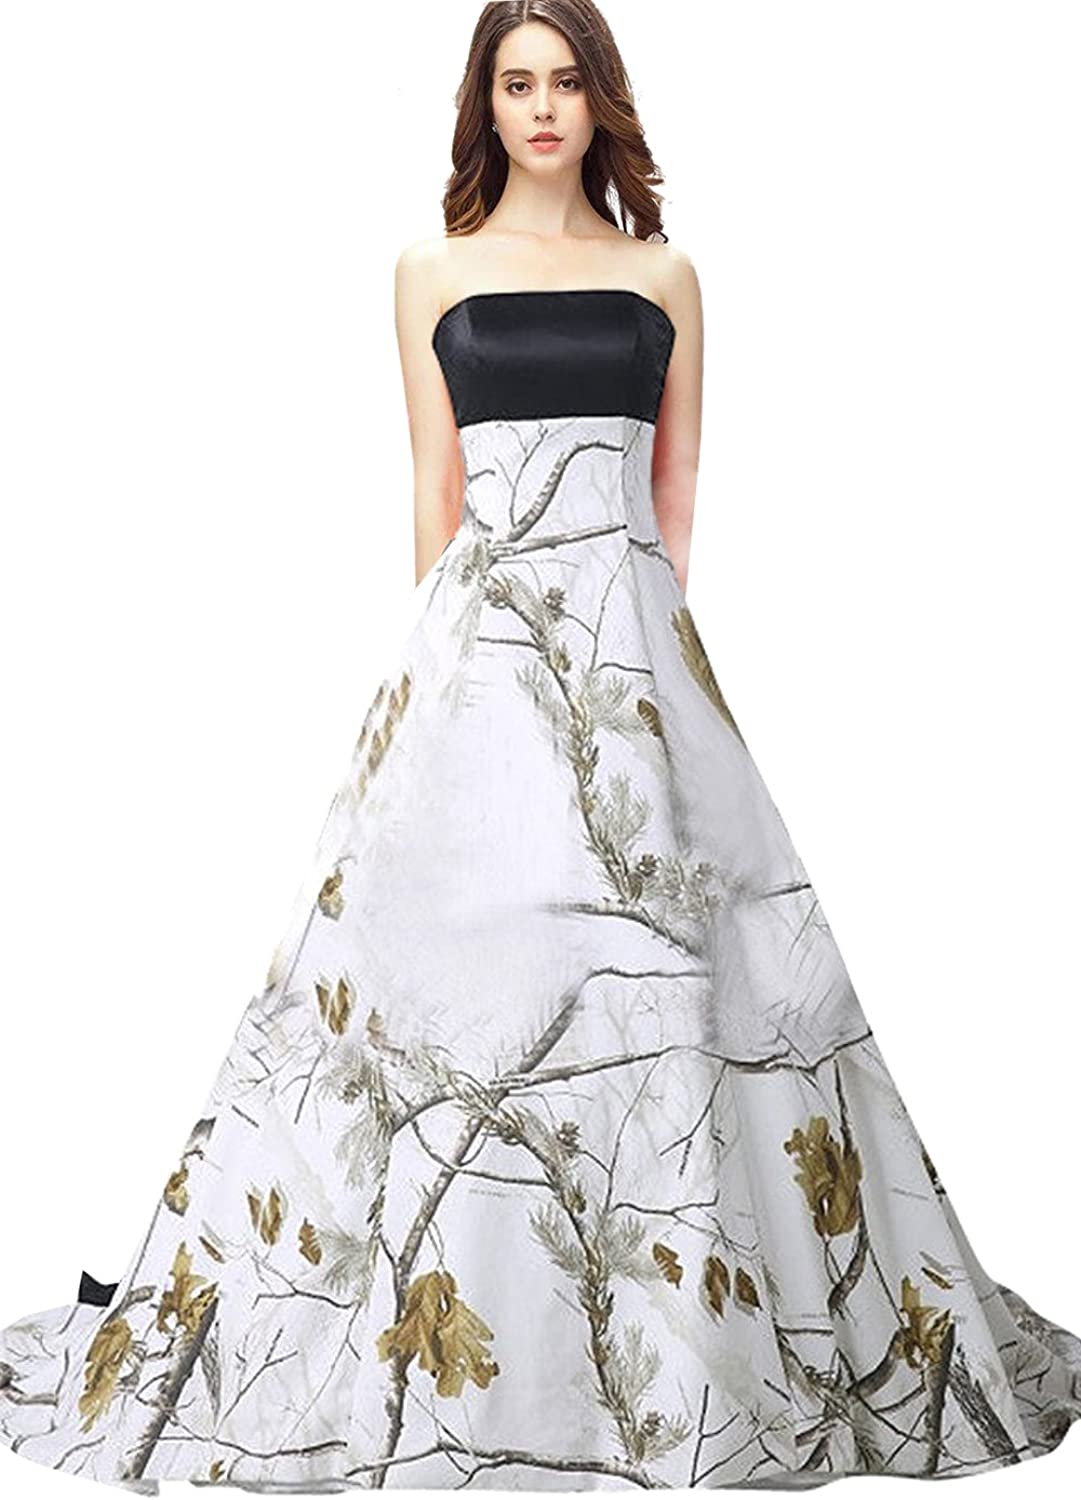 FASHION DRESS 2017 One Shoulder Camouflage Ball Gown Wedding Bridal Dresses Prom Quinceanera